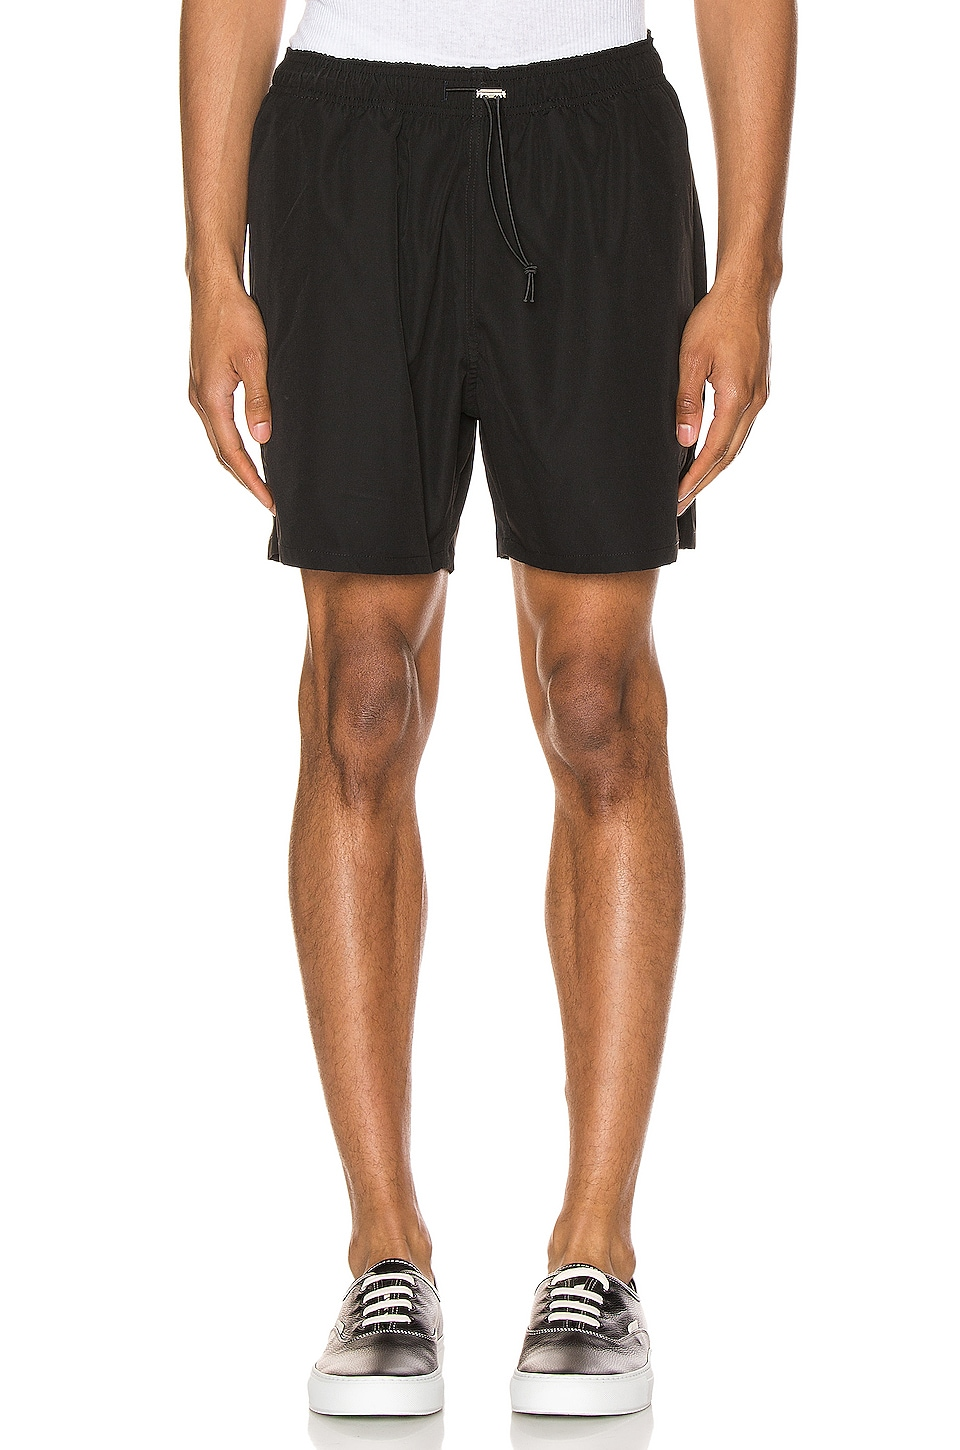 Zanerobe Zephyr Tech Short in Black